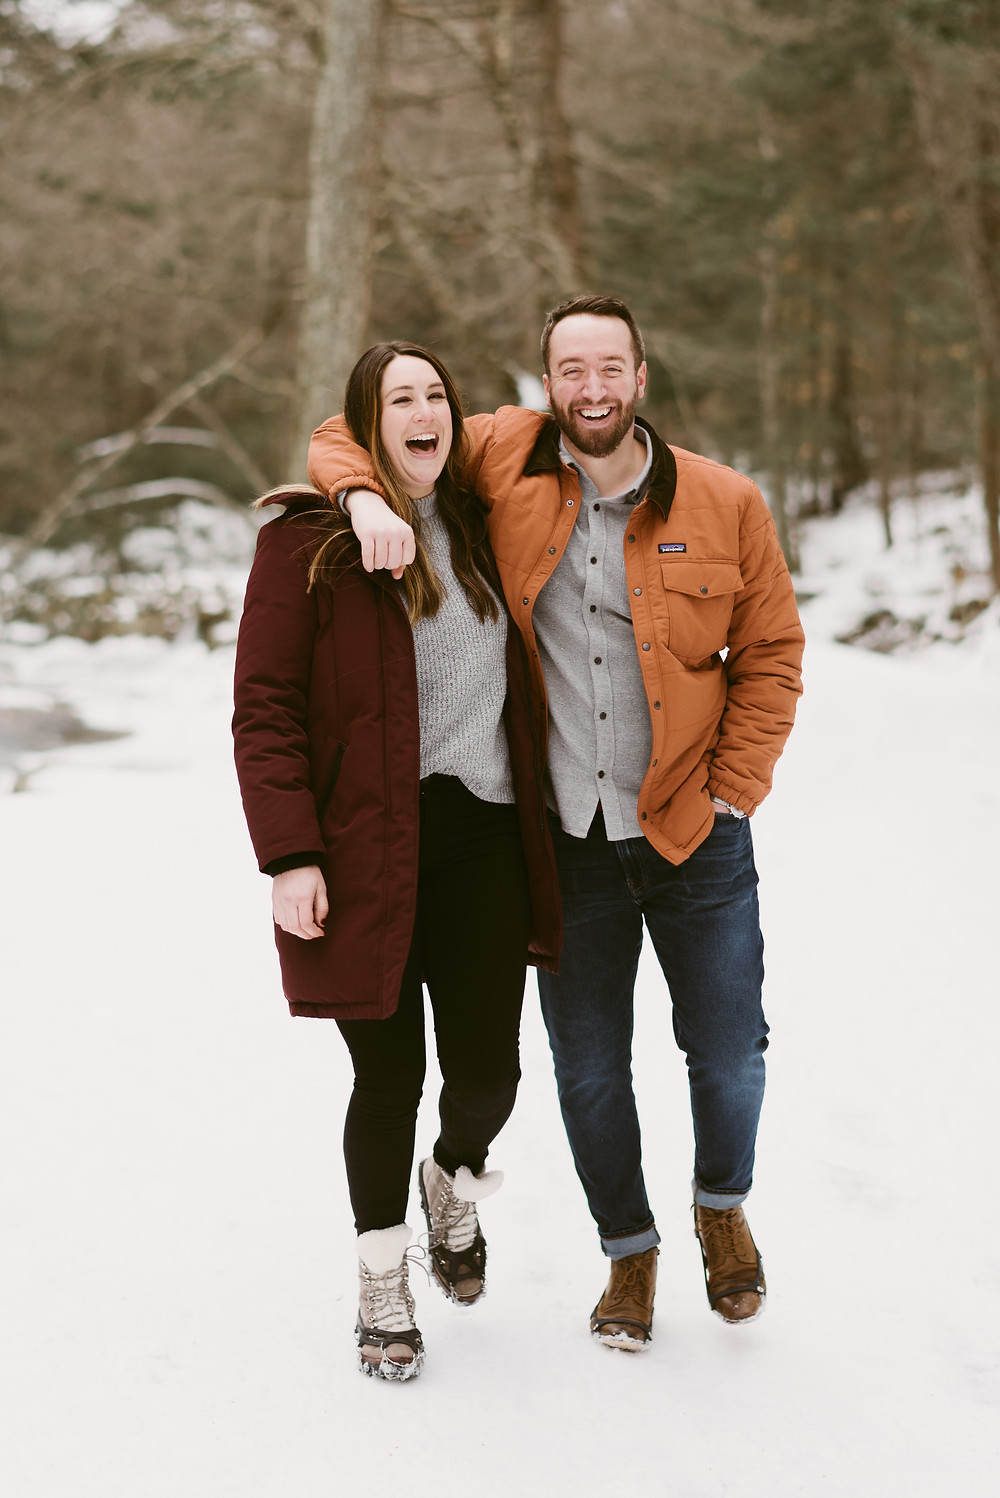 Laughing couple walking through snowy woods in upstate New York